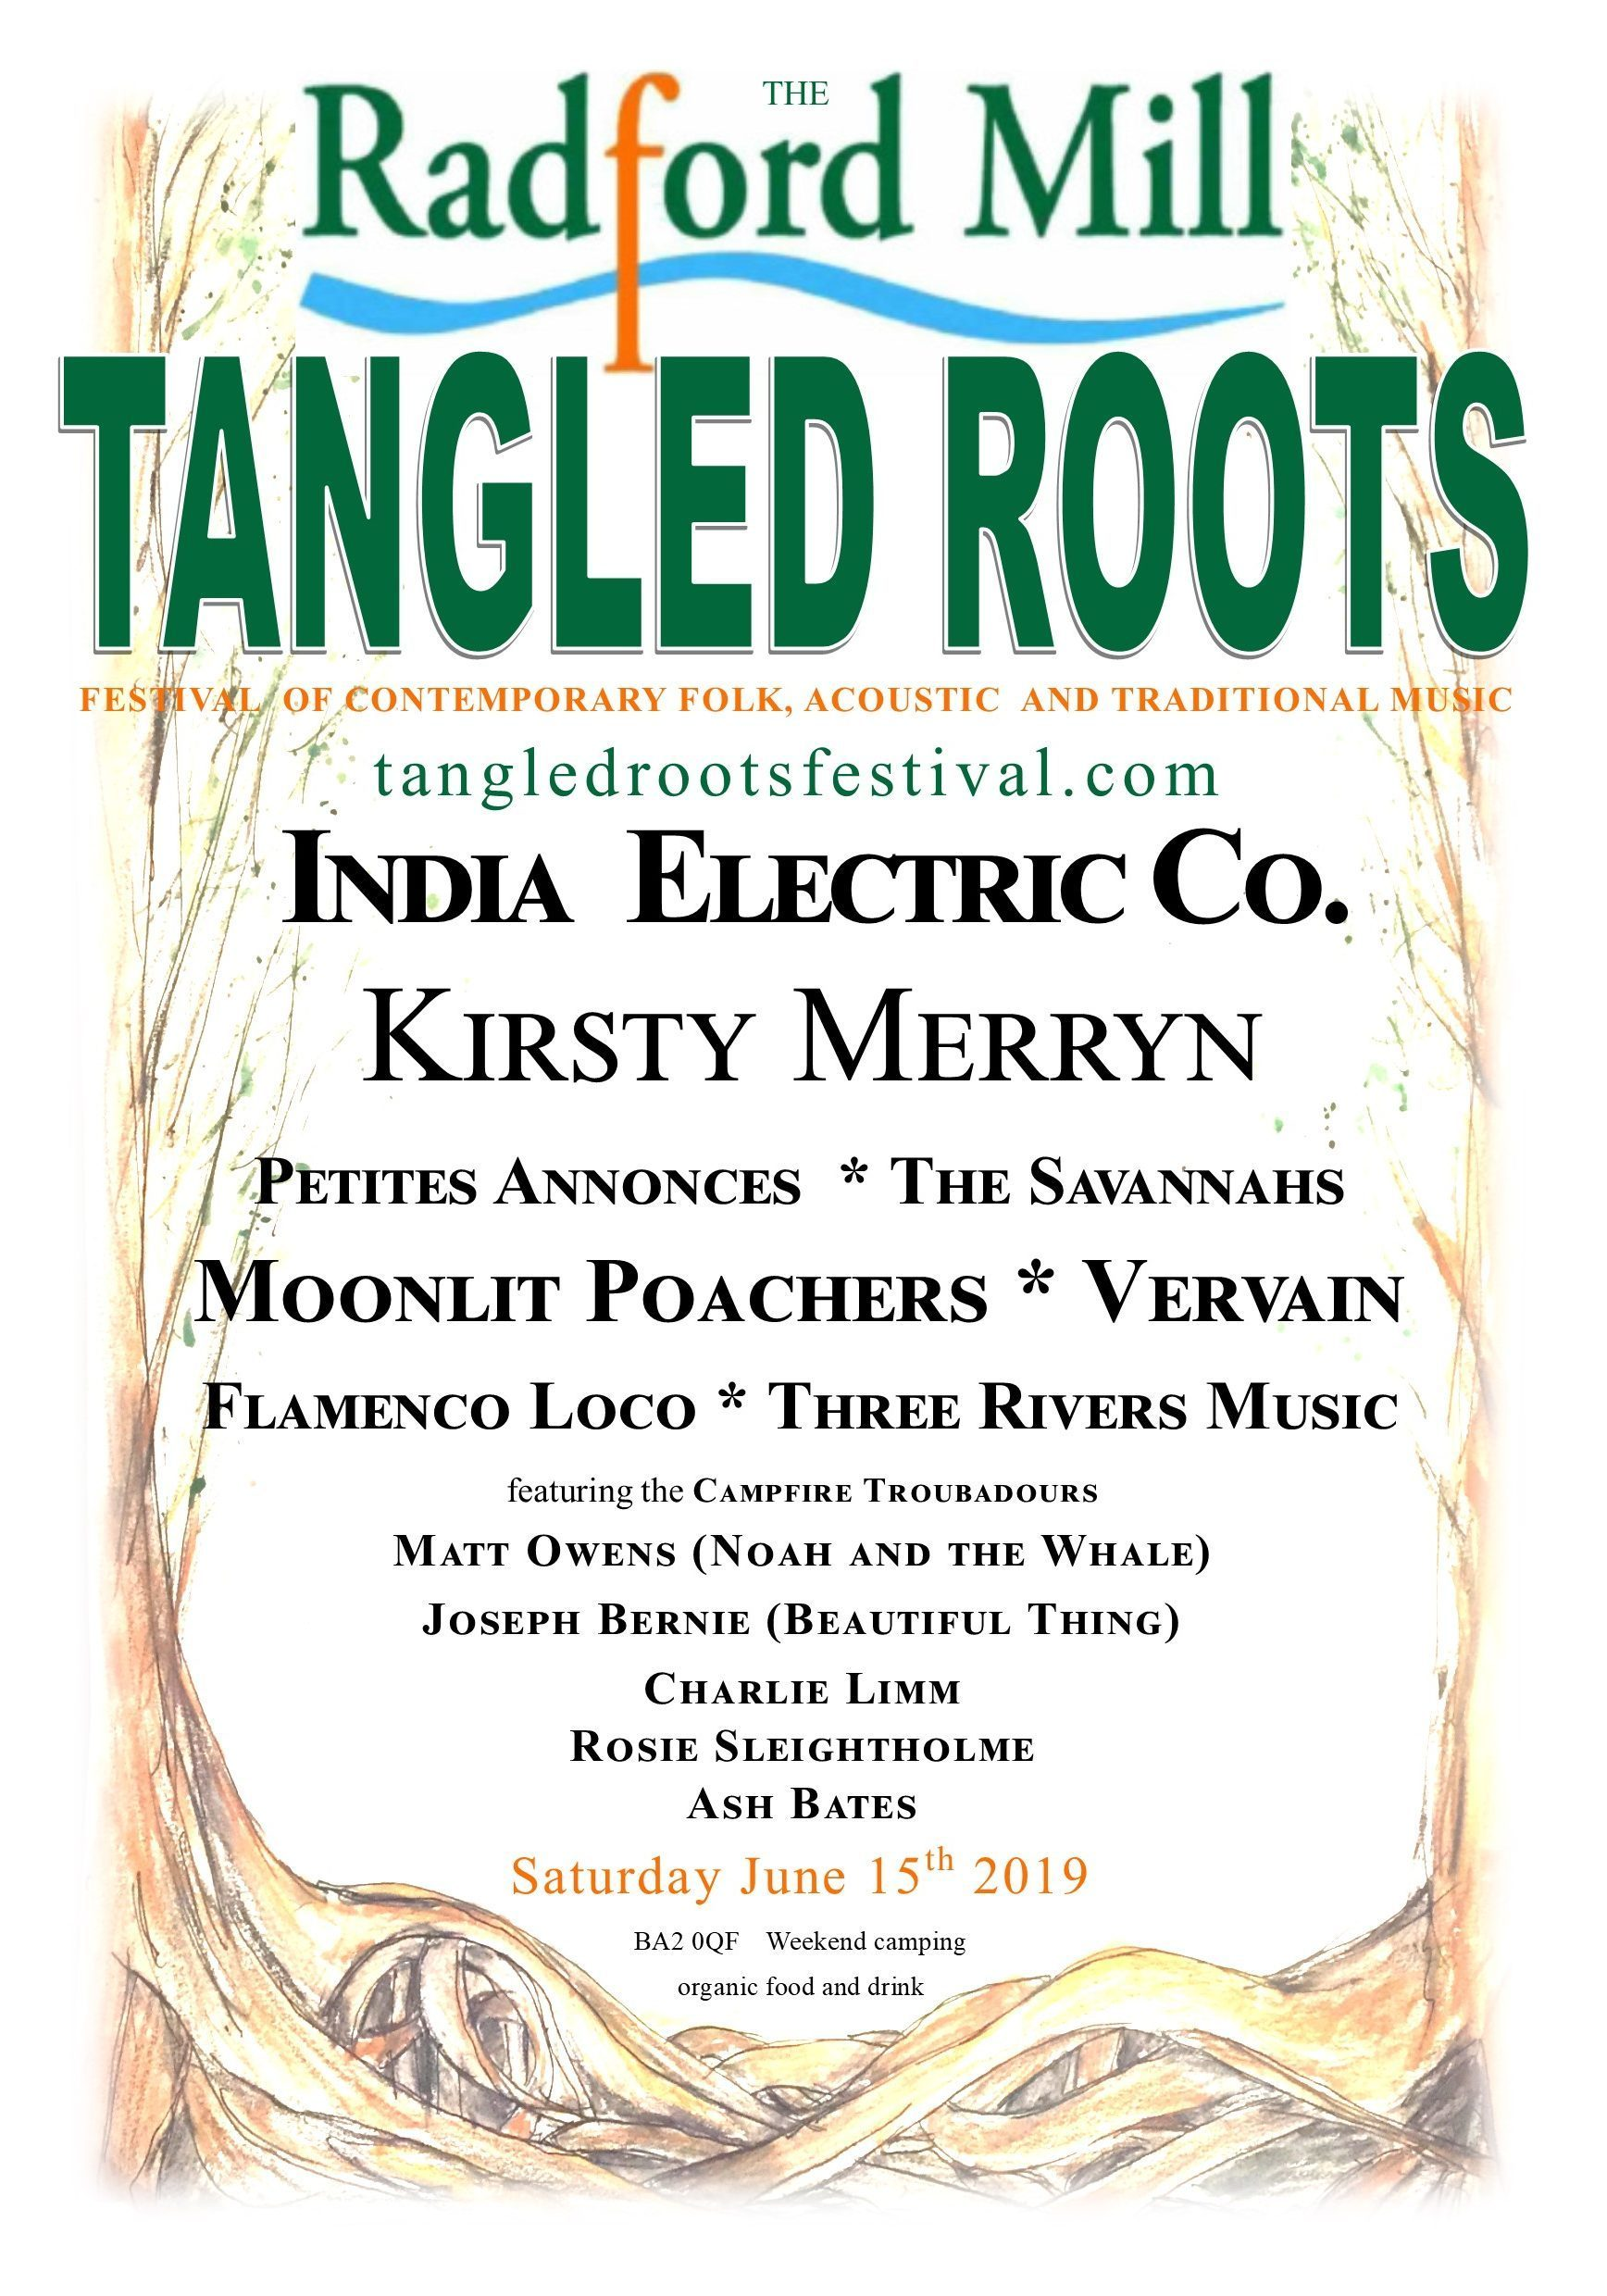 Tangled Roots Festival 15th June 2019